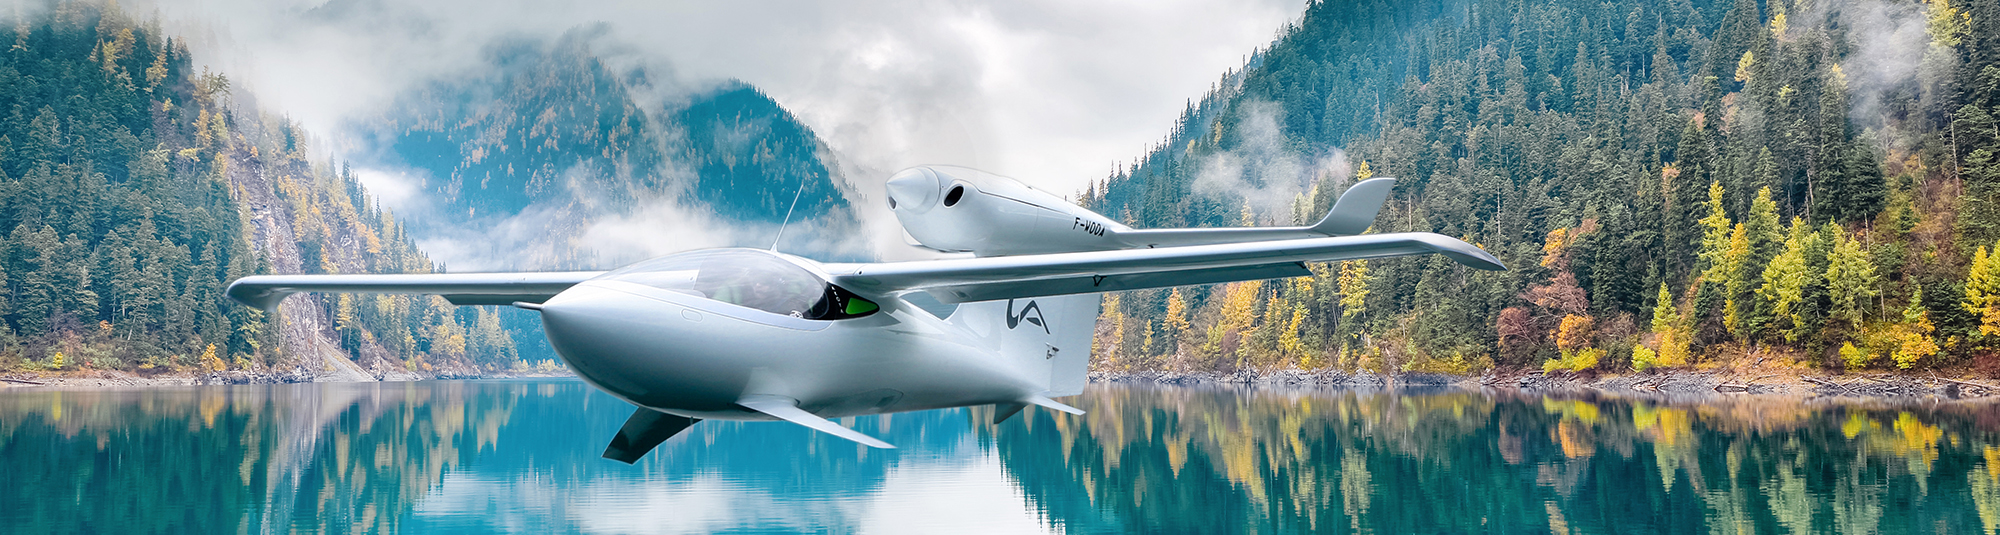 Akoya amphibious aircraft flying above lake and colorfull woods